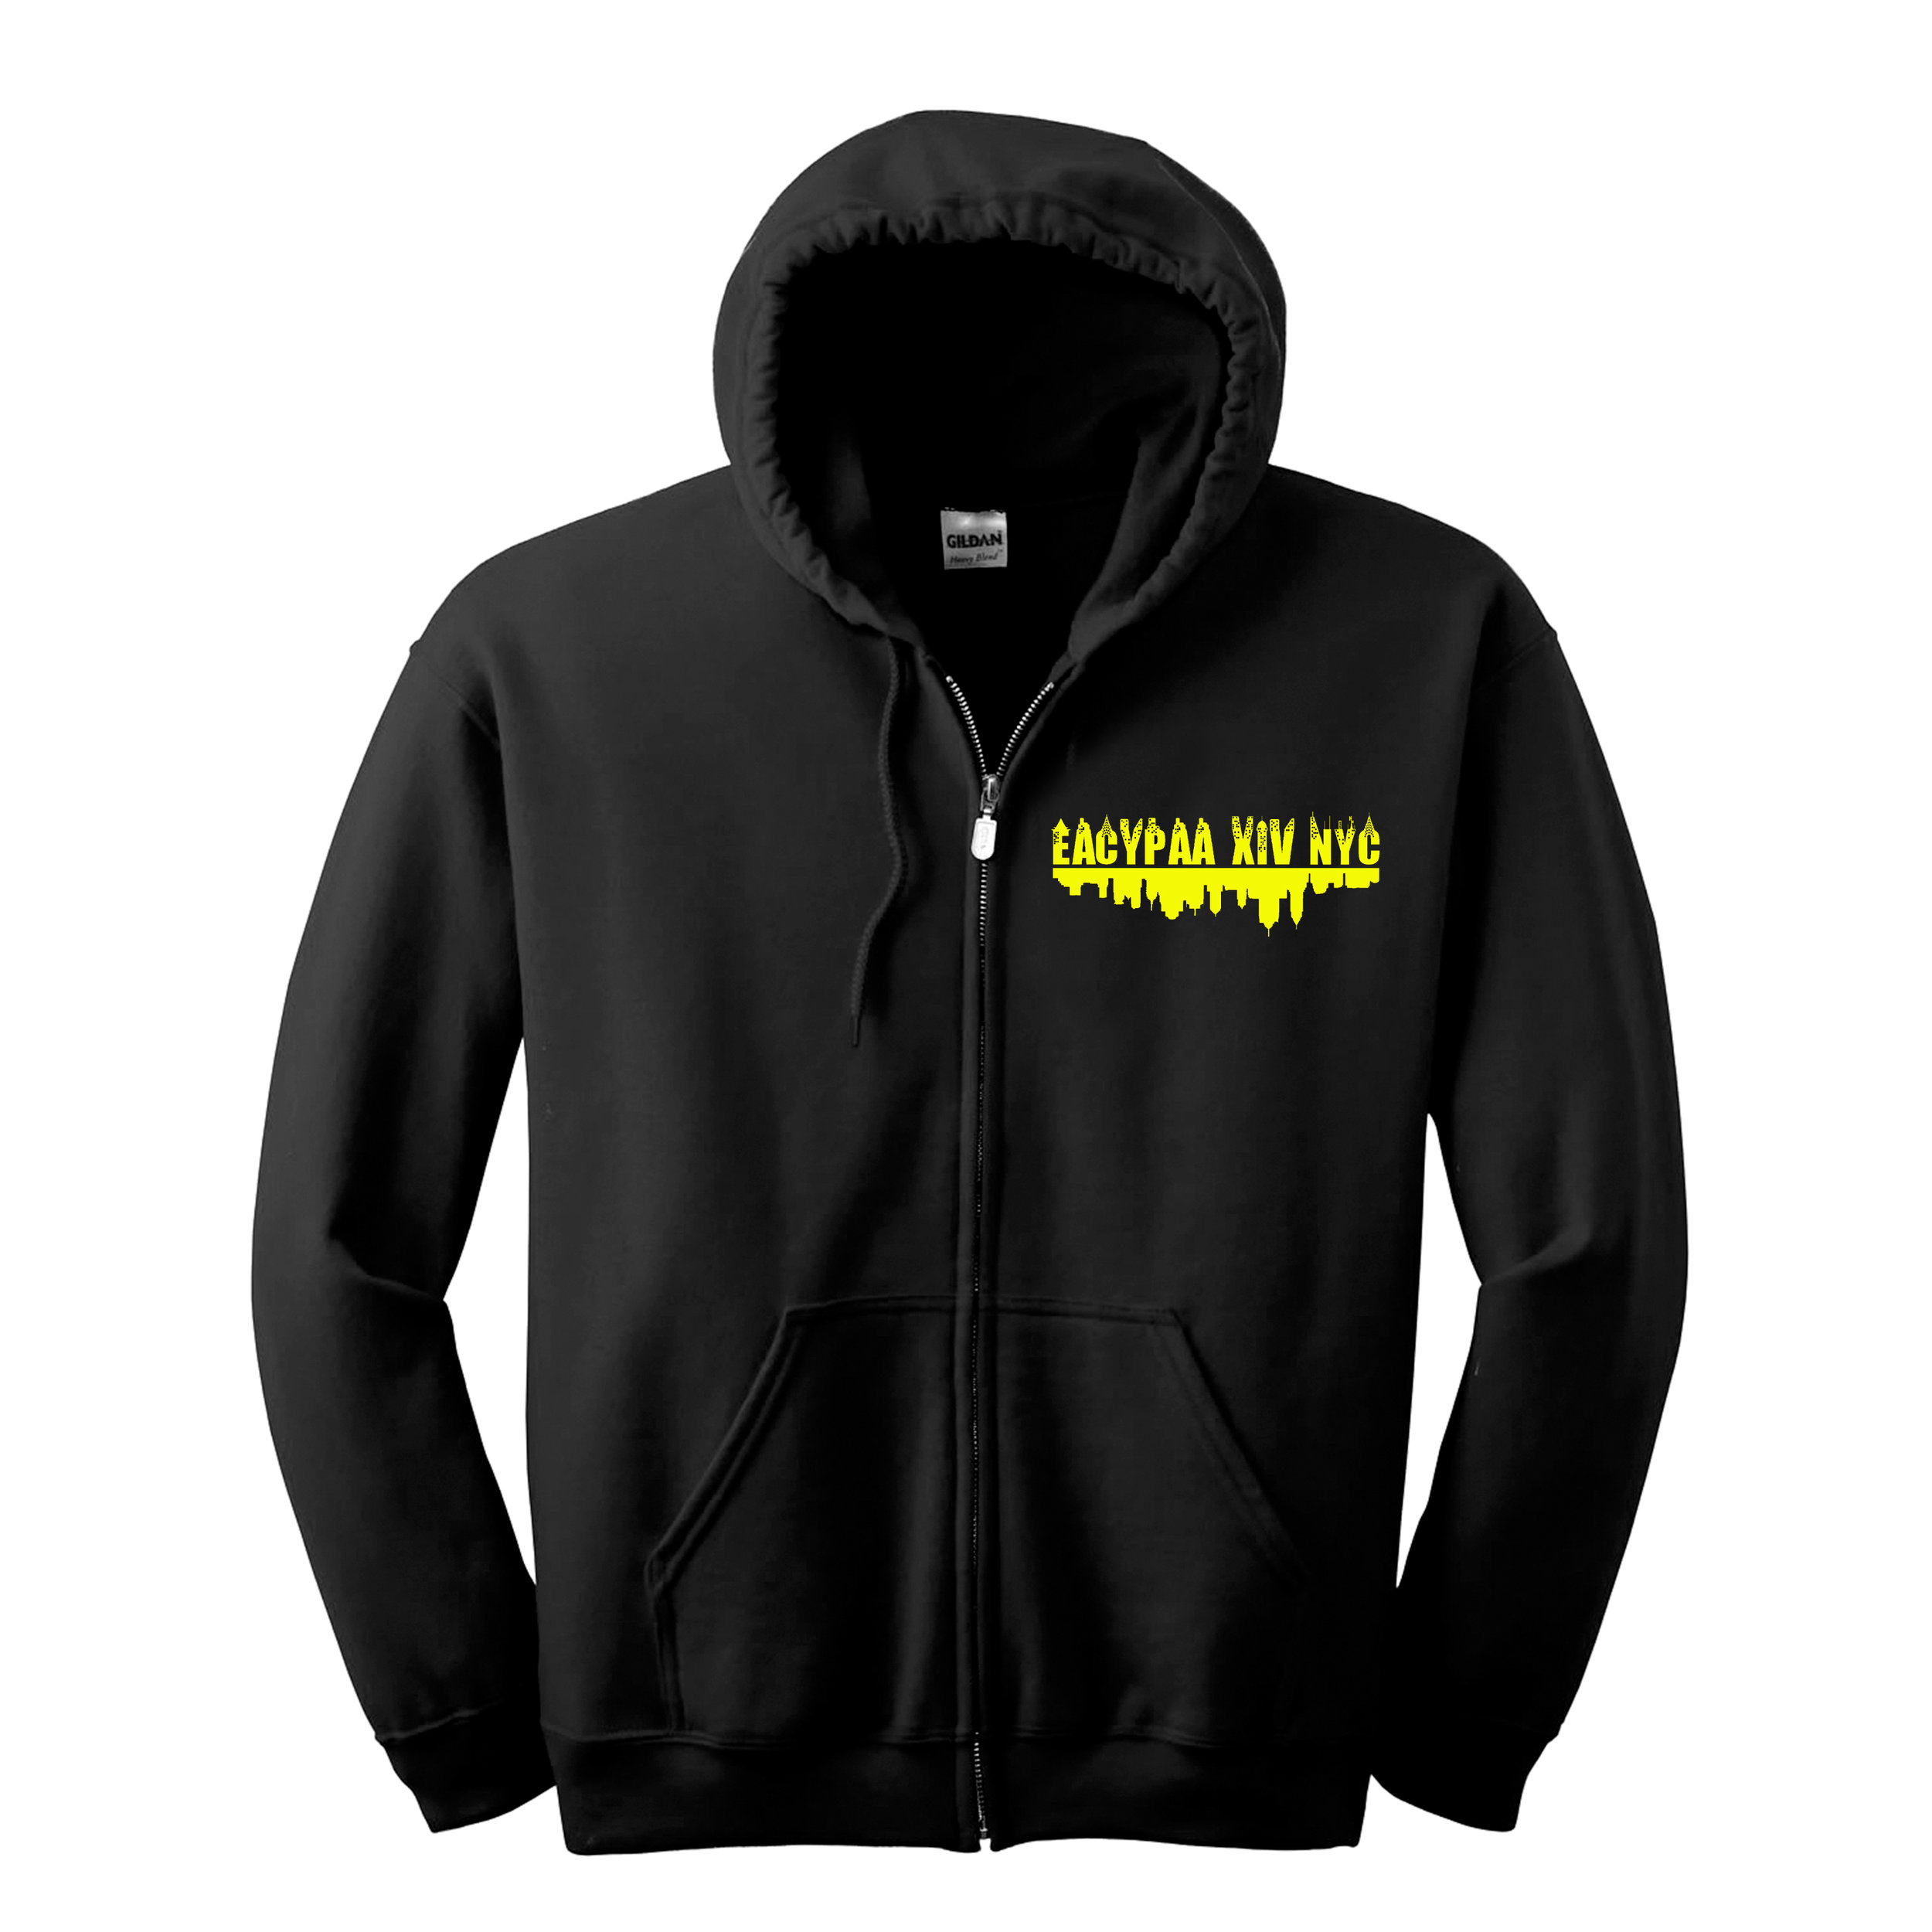 HOODY_FRONT-LAYOUT (1).jpg